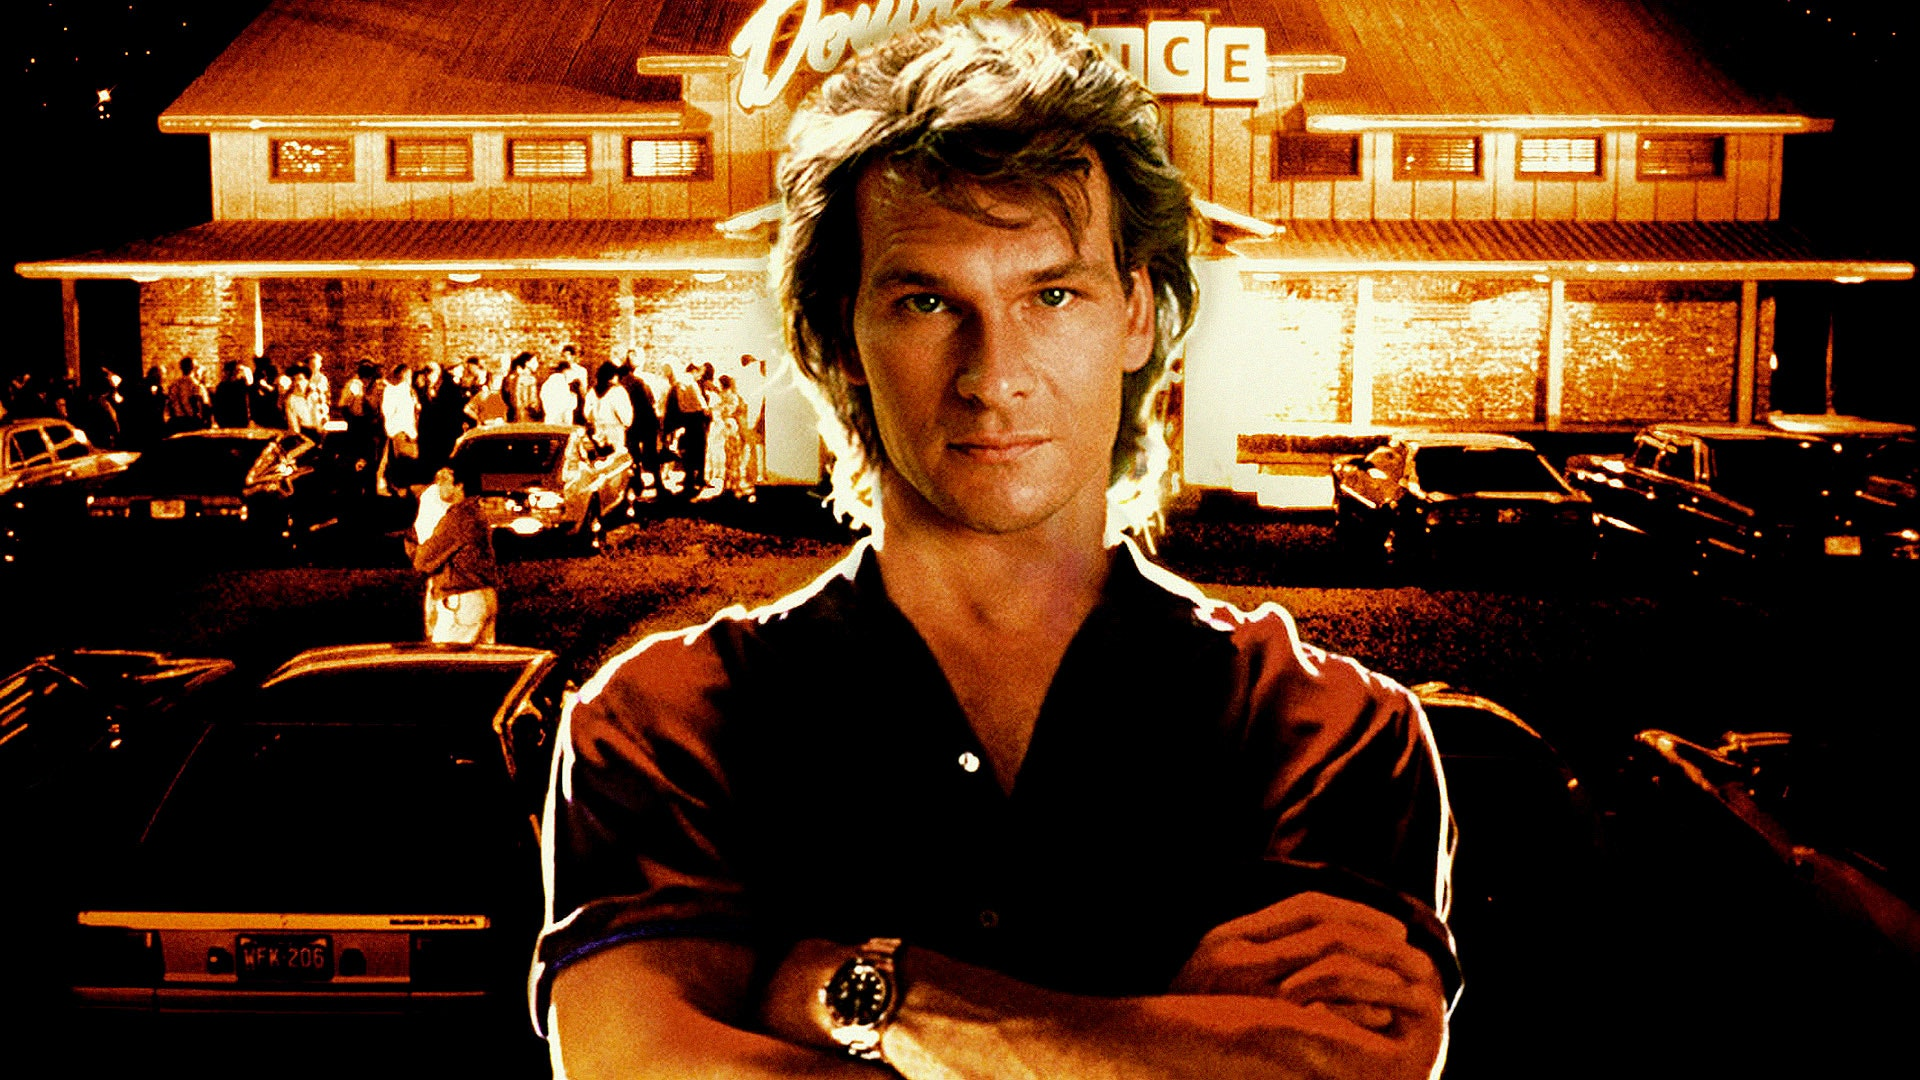 Songs in the movie roadhouse 2